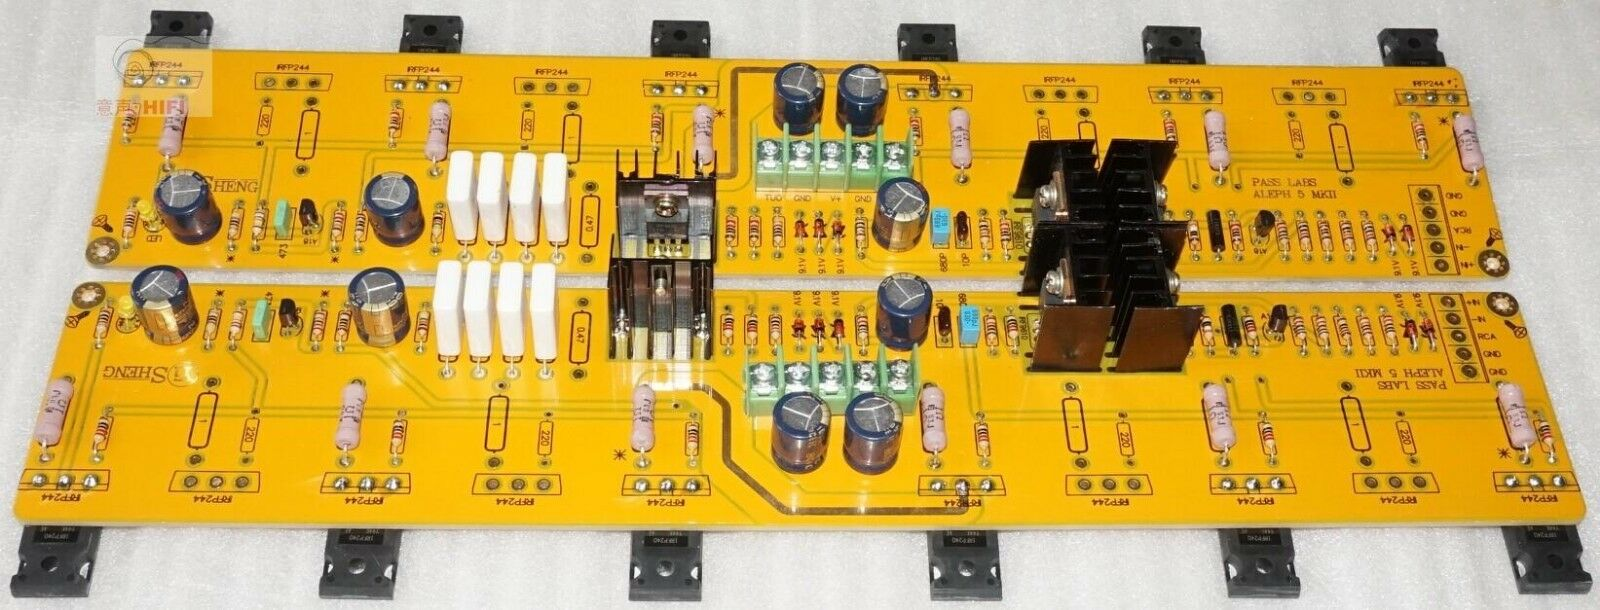 Pass A5 Class A Amplifier Board With Balanced And Unbalanced Input Labs Aleph2 Diy Kkpcb Layout Ebay